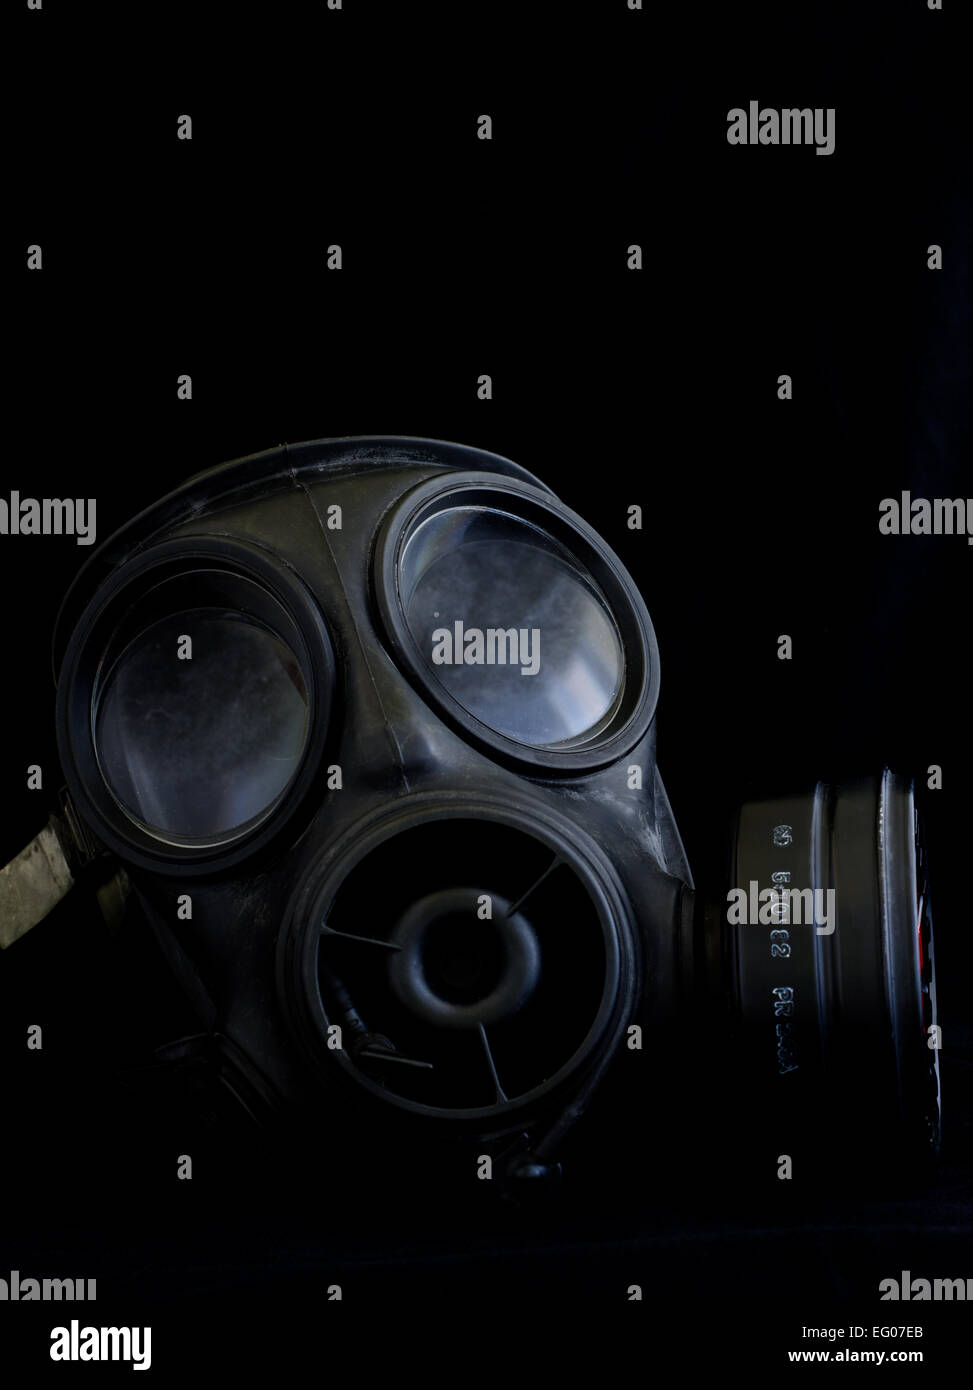 gas mask respirator on black background - Stock Image